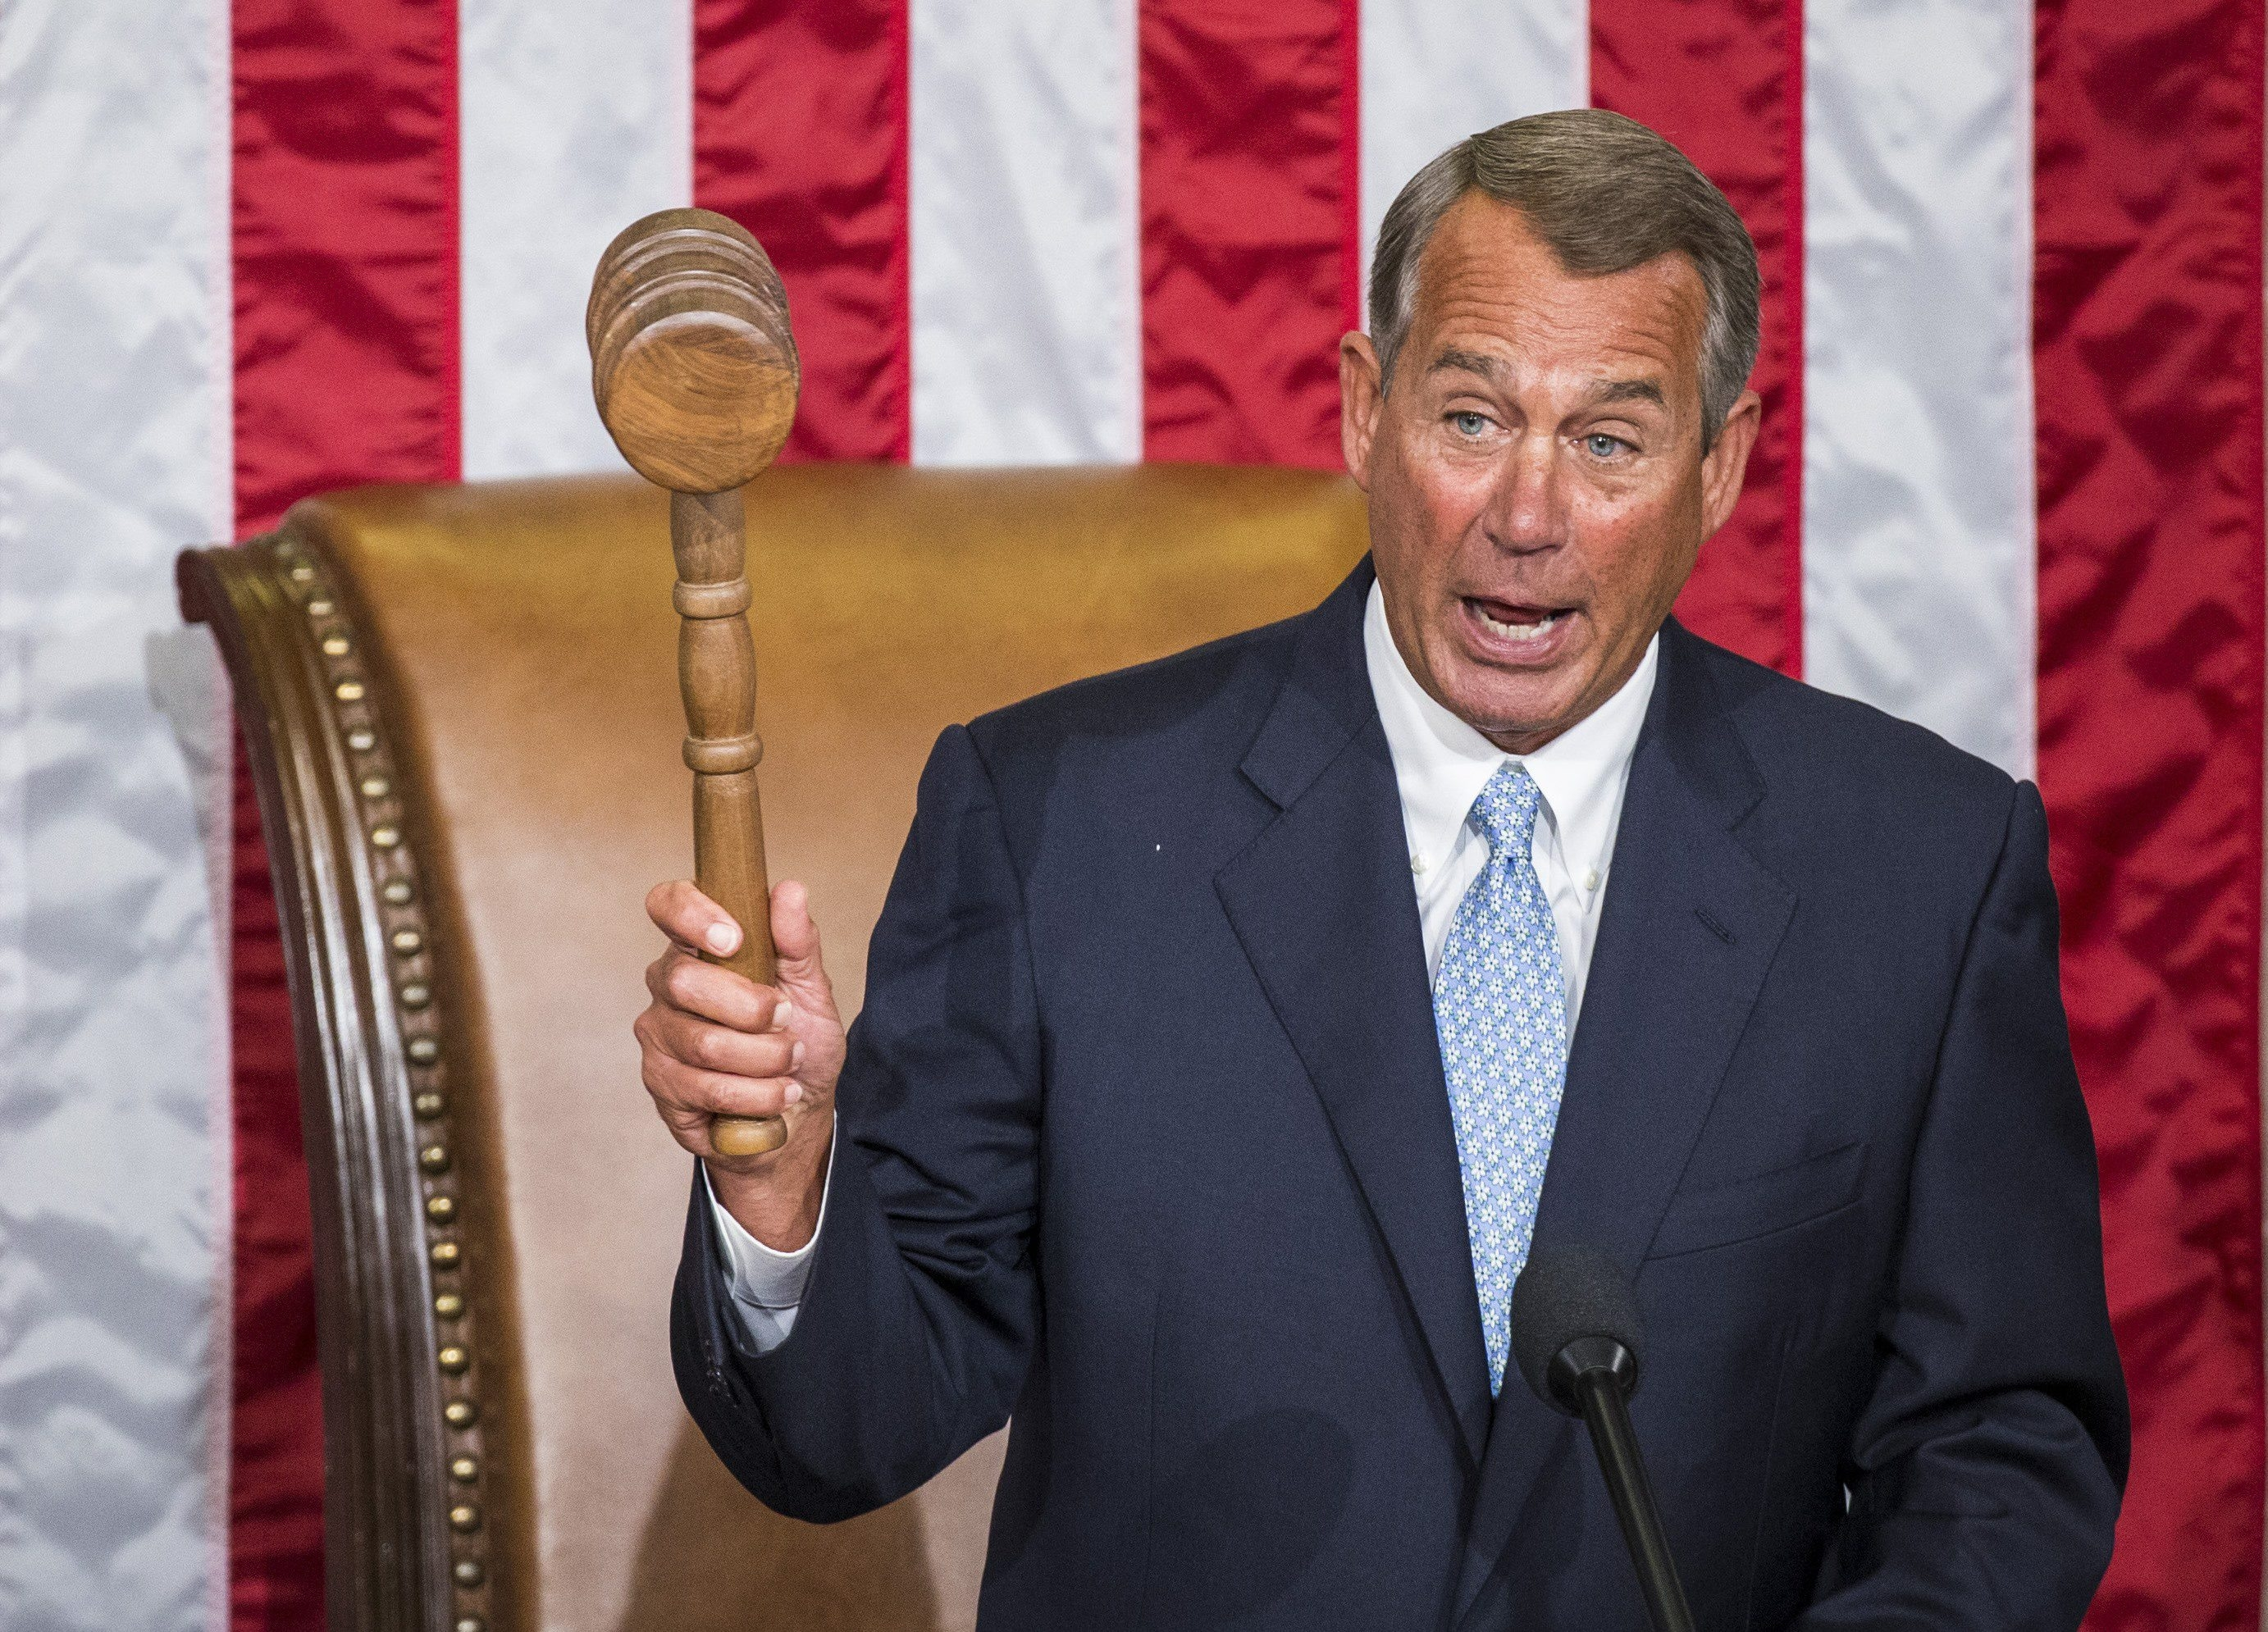 House Speaker John Boehner (R-Ohio) holds the gavel after he was re-elected as speaker at the Capitol Building in Washington in January. Two dozen Republicans voted against Boehner, diminishing somewhat what should have been a day of euphoria for the party as Republicans assumed control of both houses of Congress for the first time in eight years.